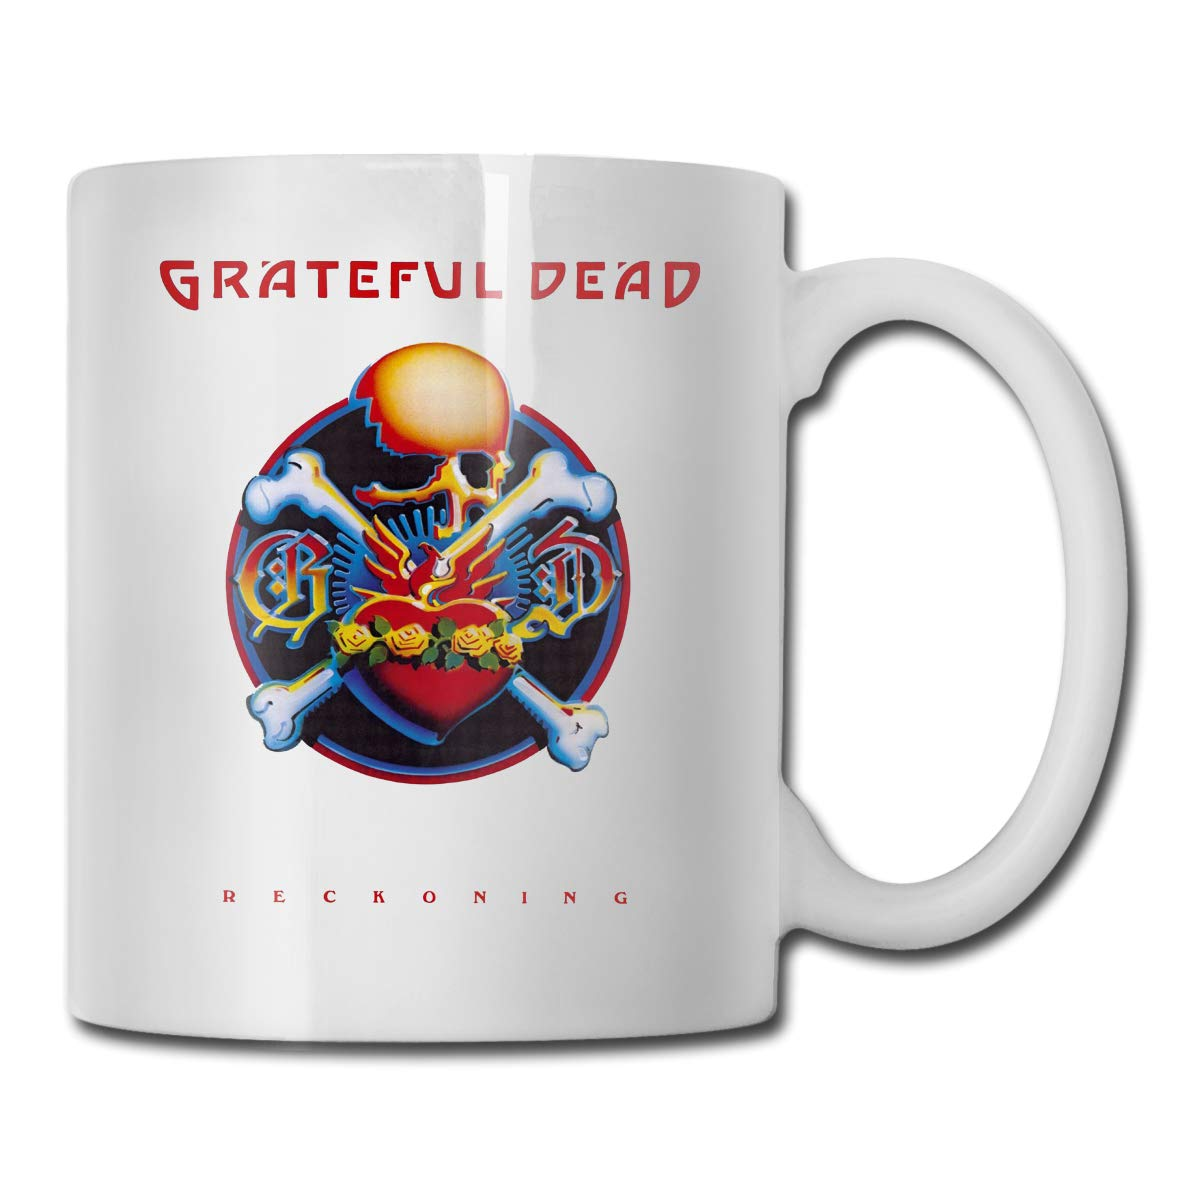 Office Coffee Cup CassidyGratefulDead Geblackus 14.72 OZ Capacity Mug is Perfect for CoffeeWhite